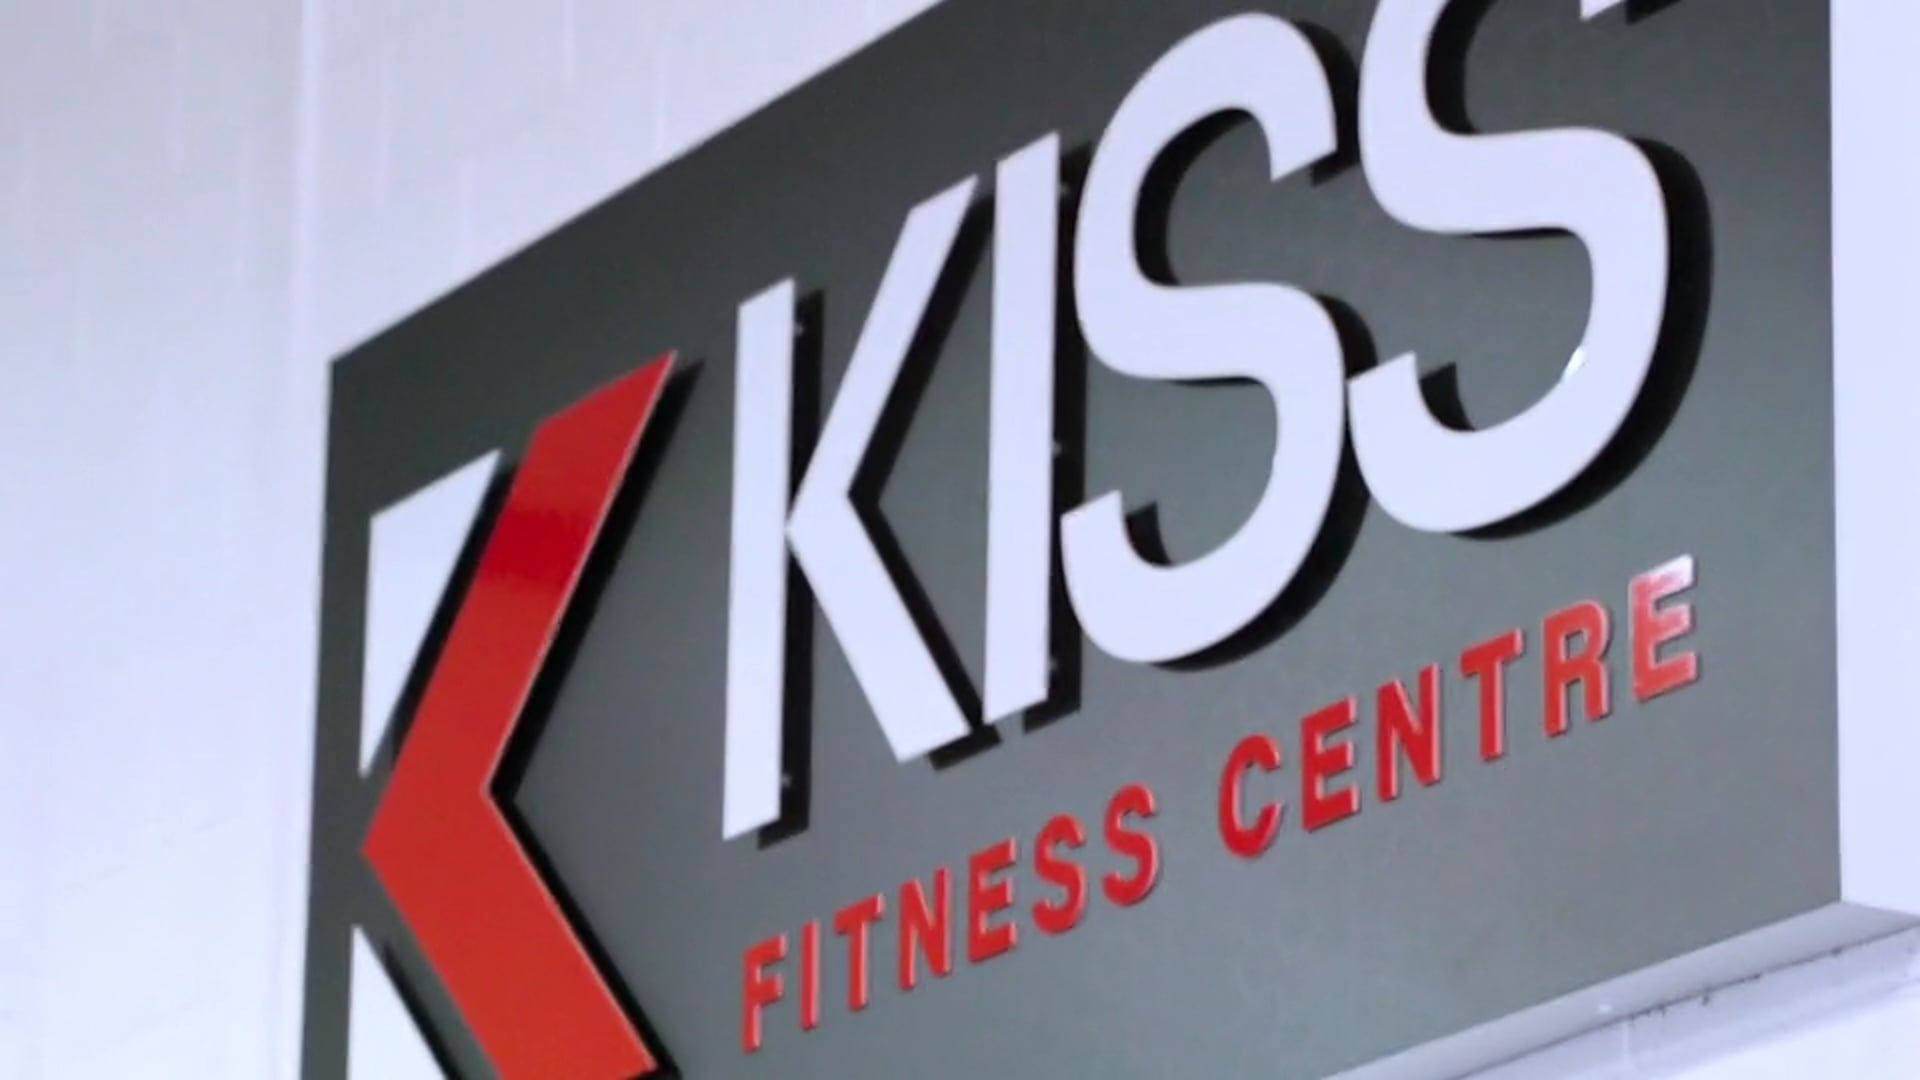 Introducing Kiss Fitness